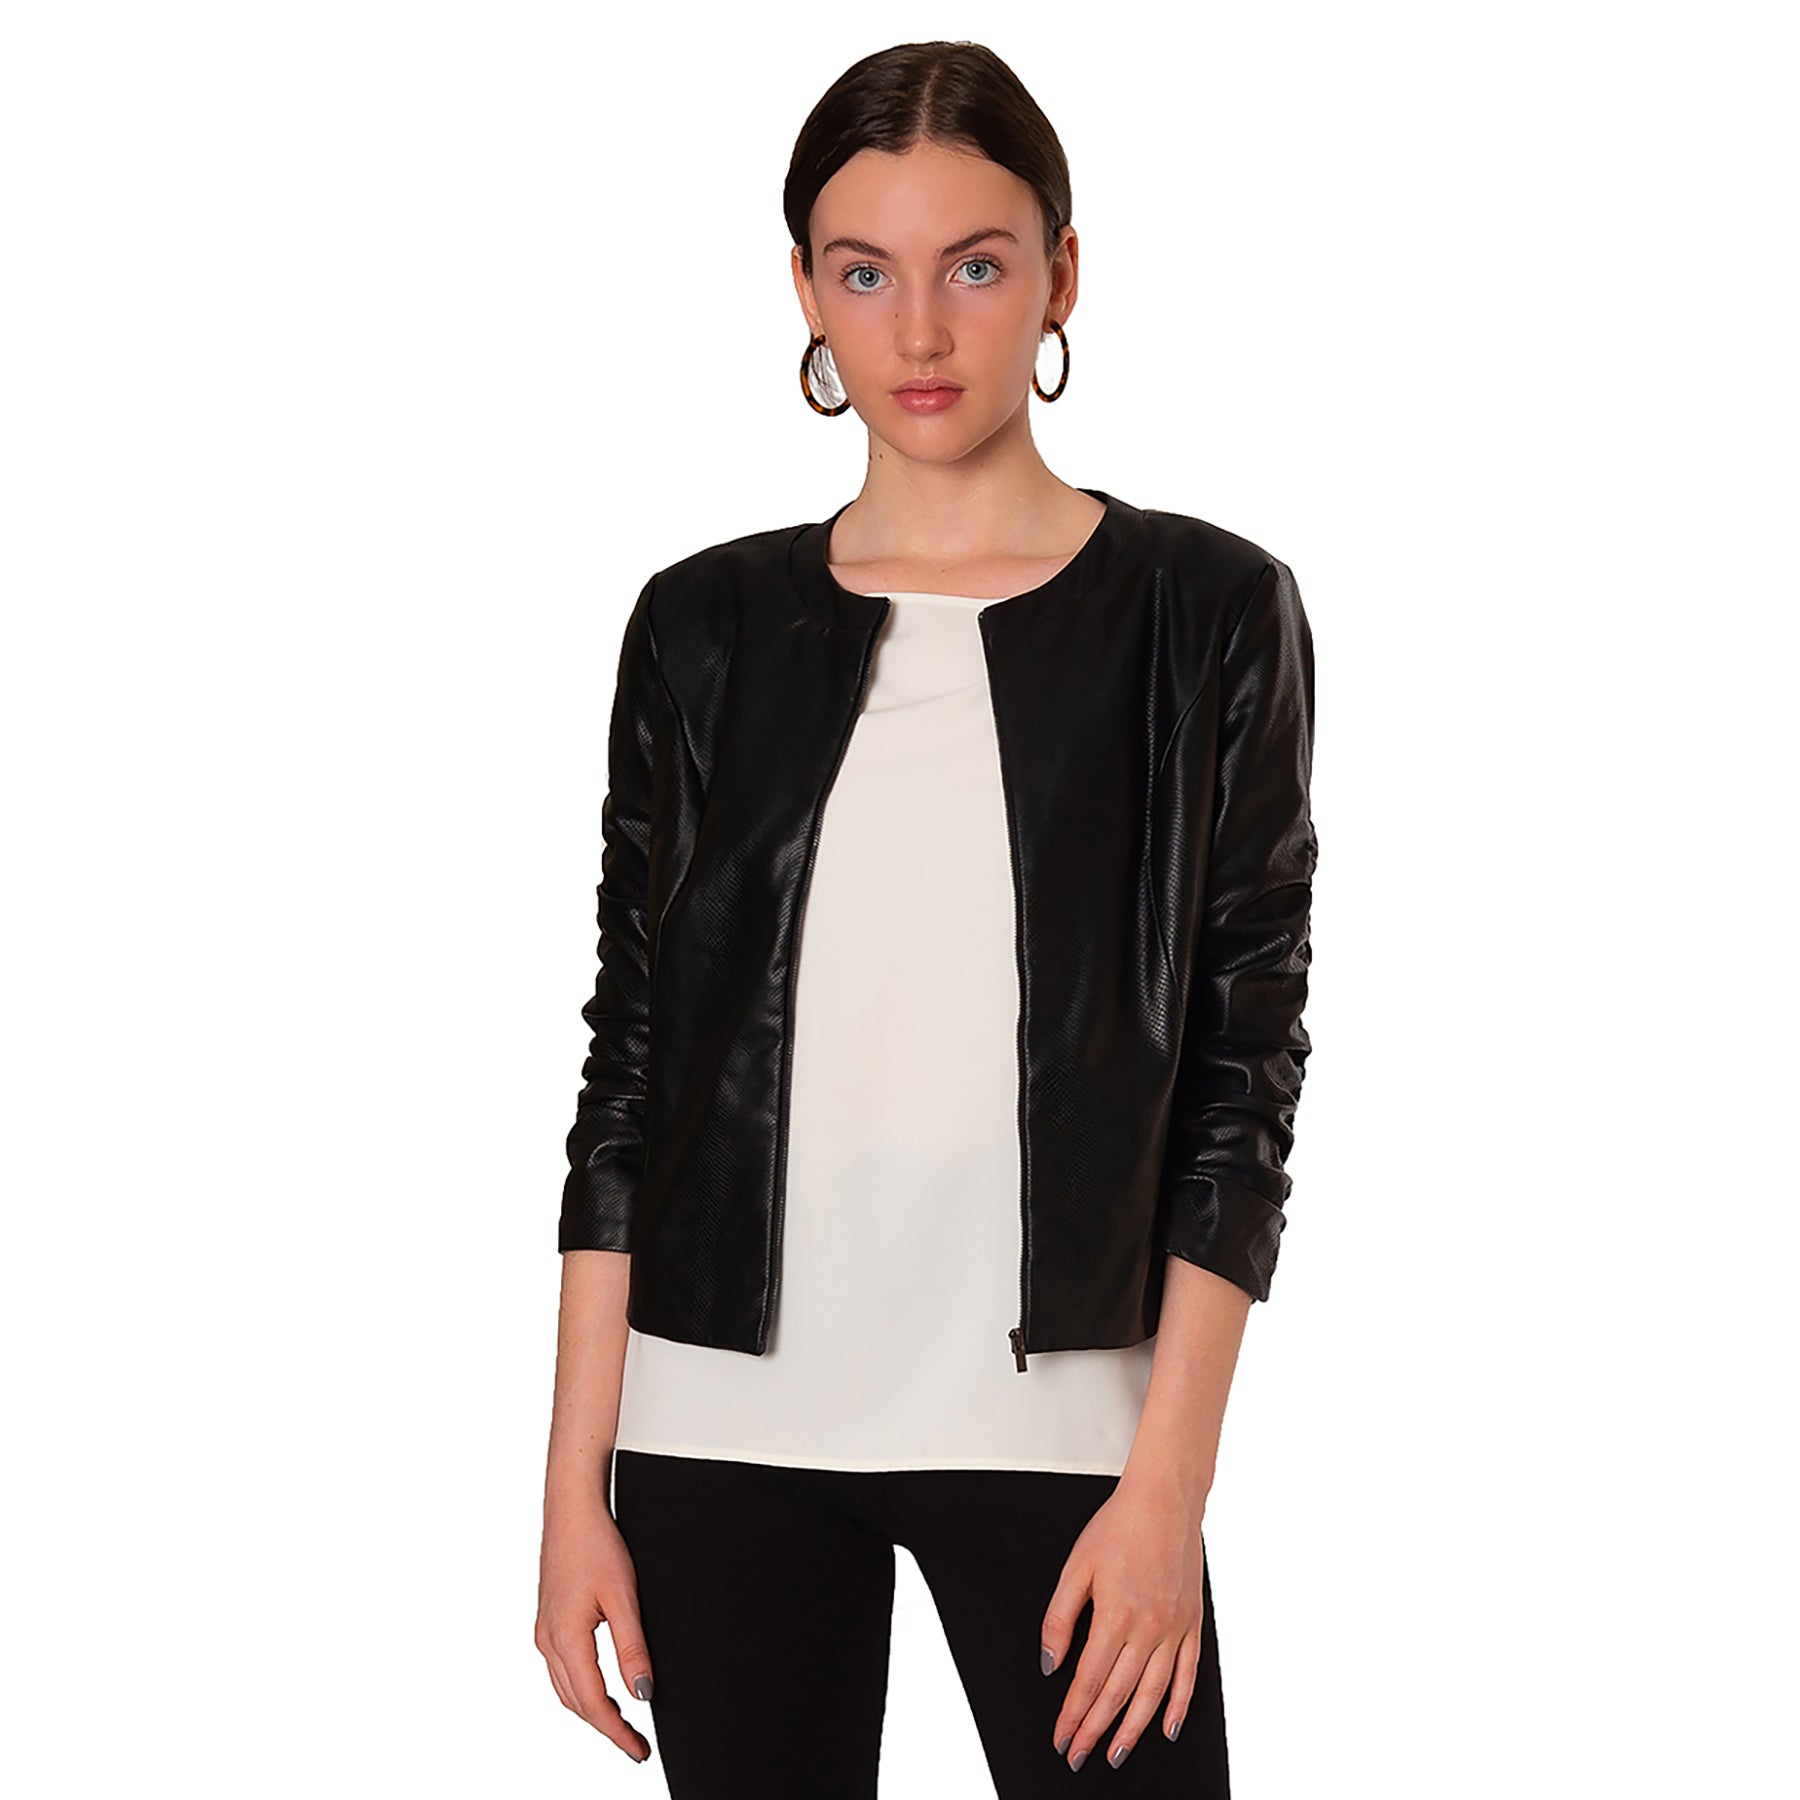 Raines 3/4 Sleeve Faux Leather Jacket - Elizabeth Ackerman New York